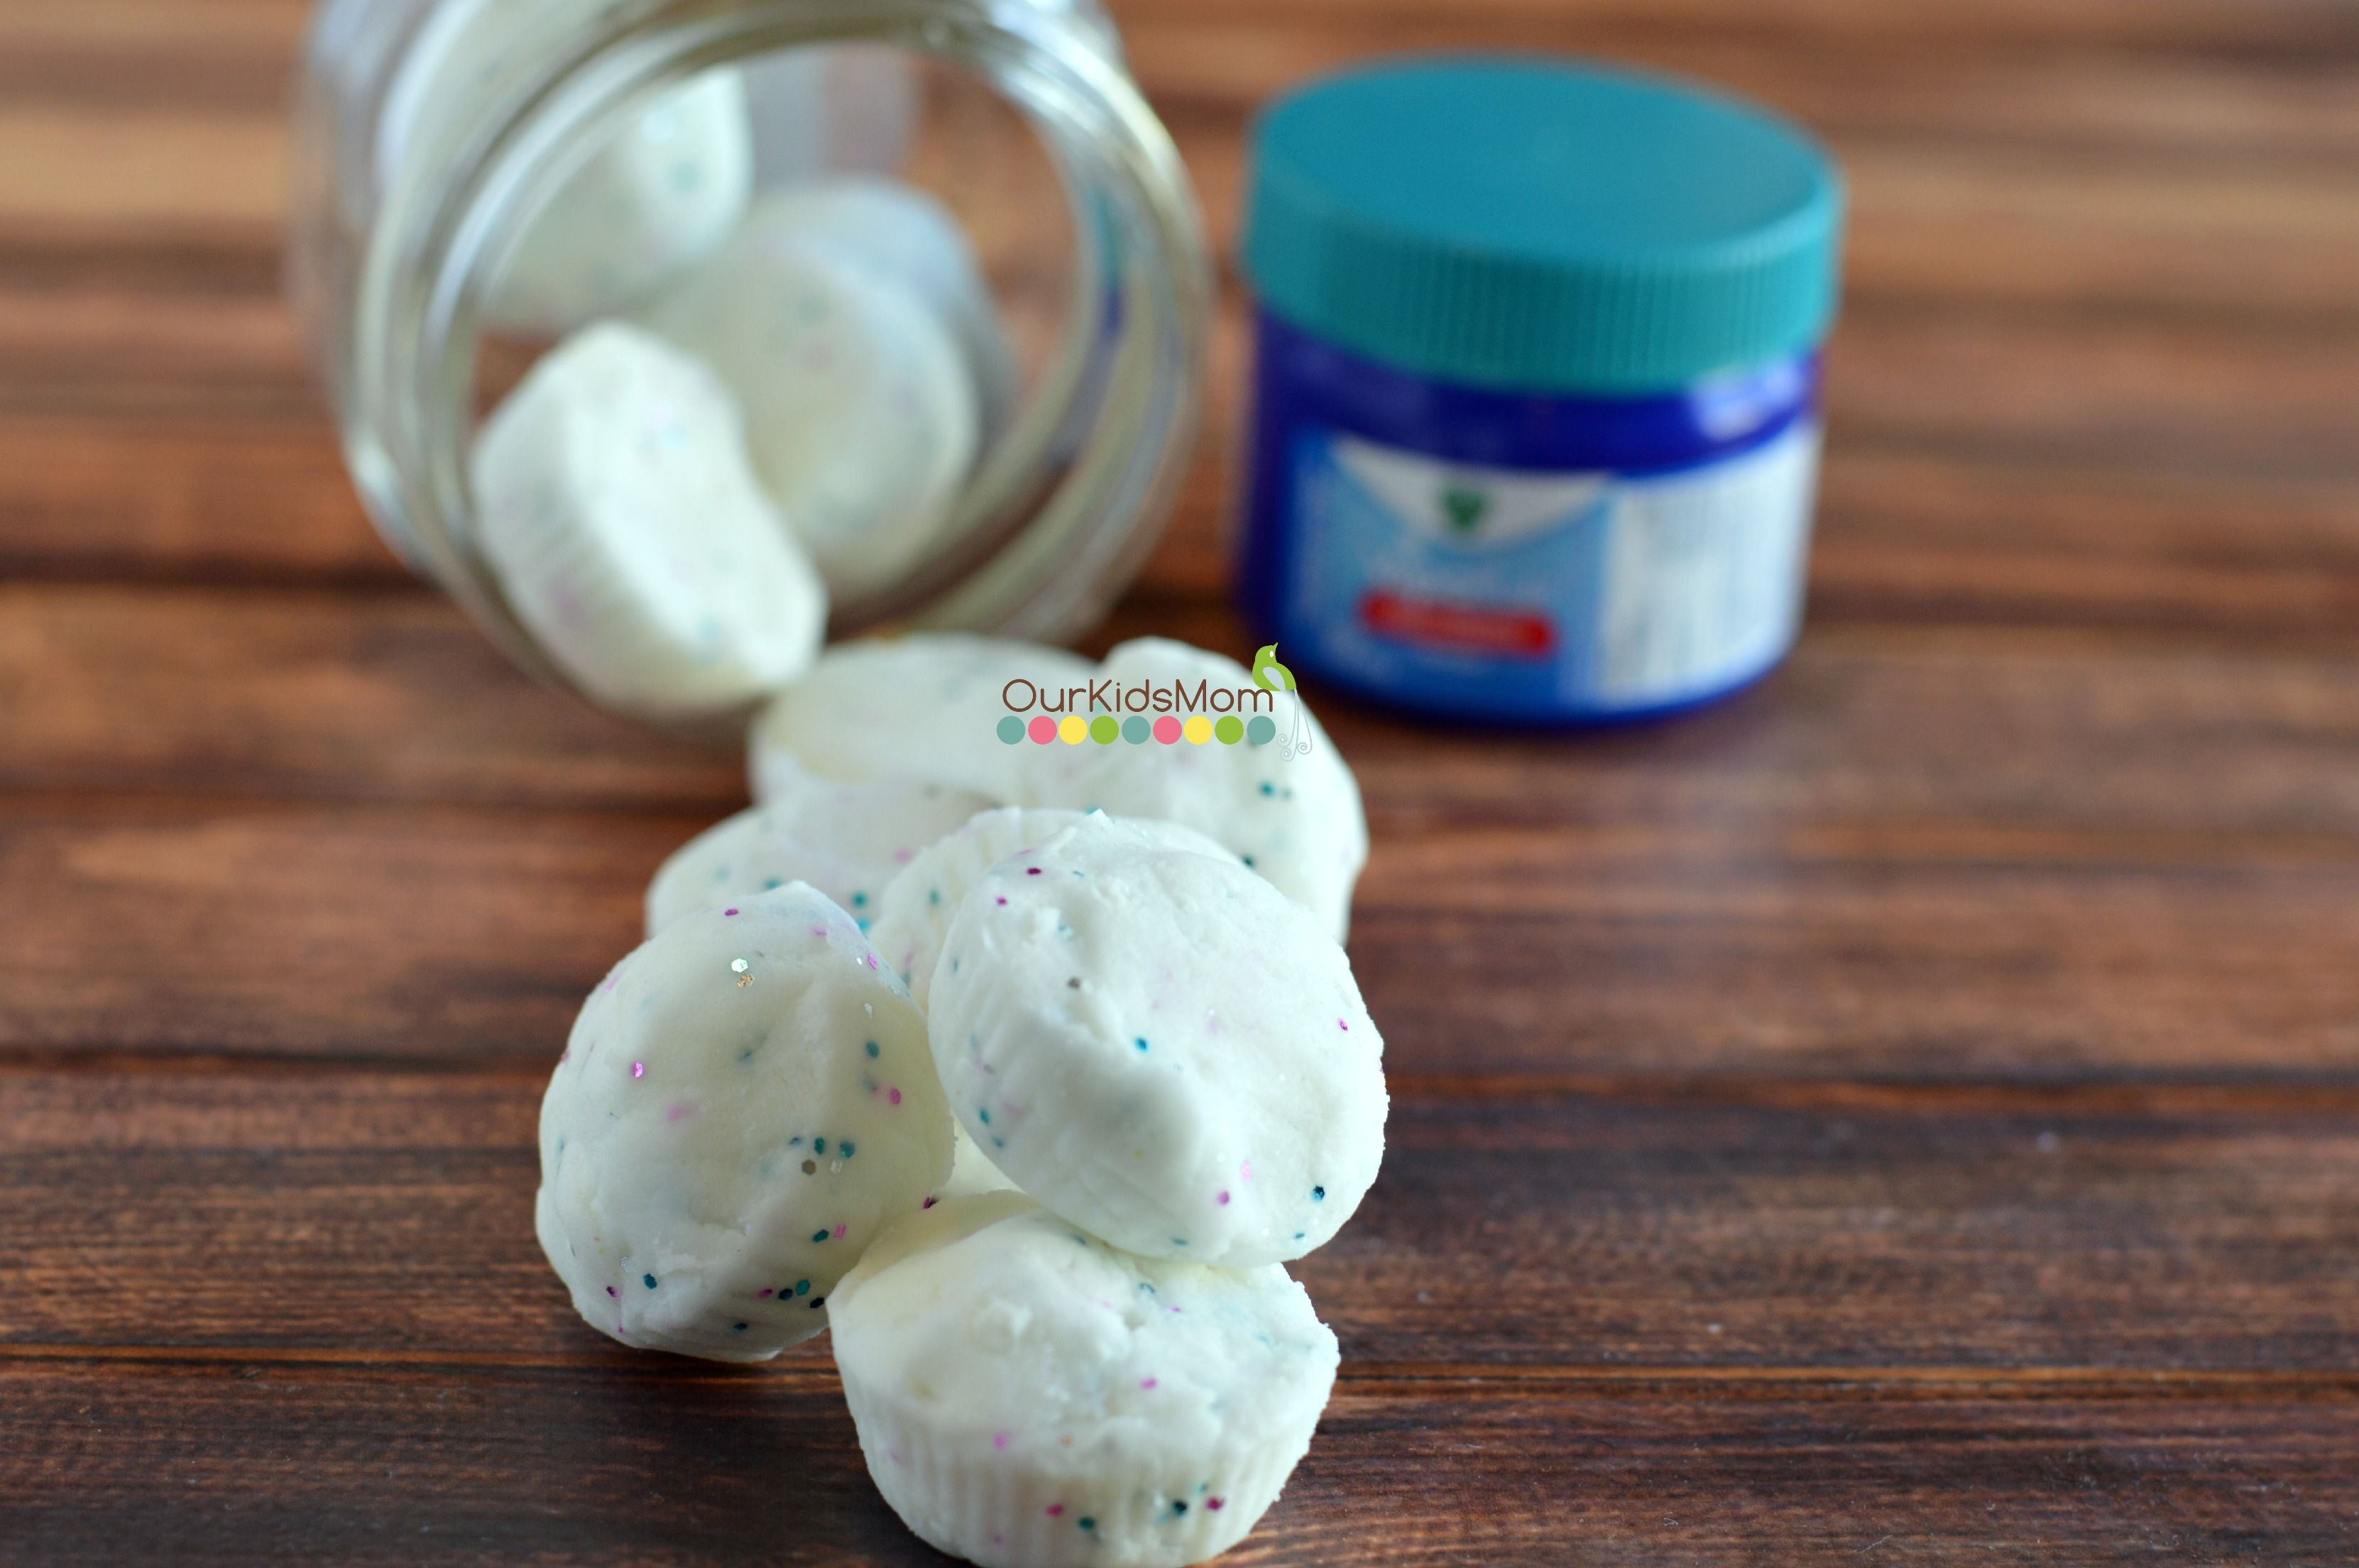 Homemade Vicks Shower Disks Recipe Vicks Shower Disks Vicks